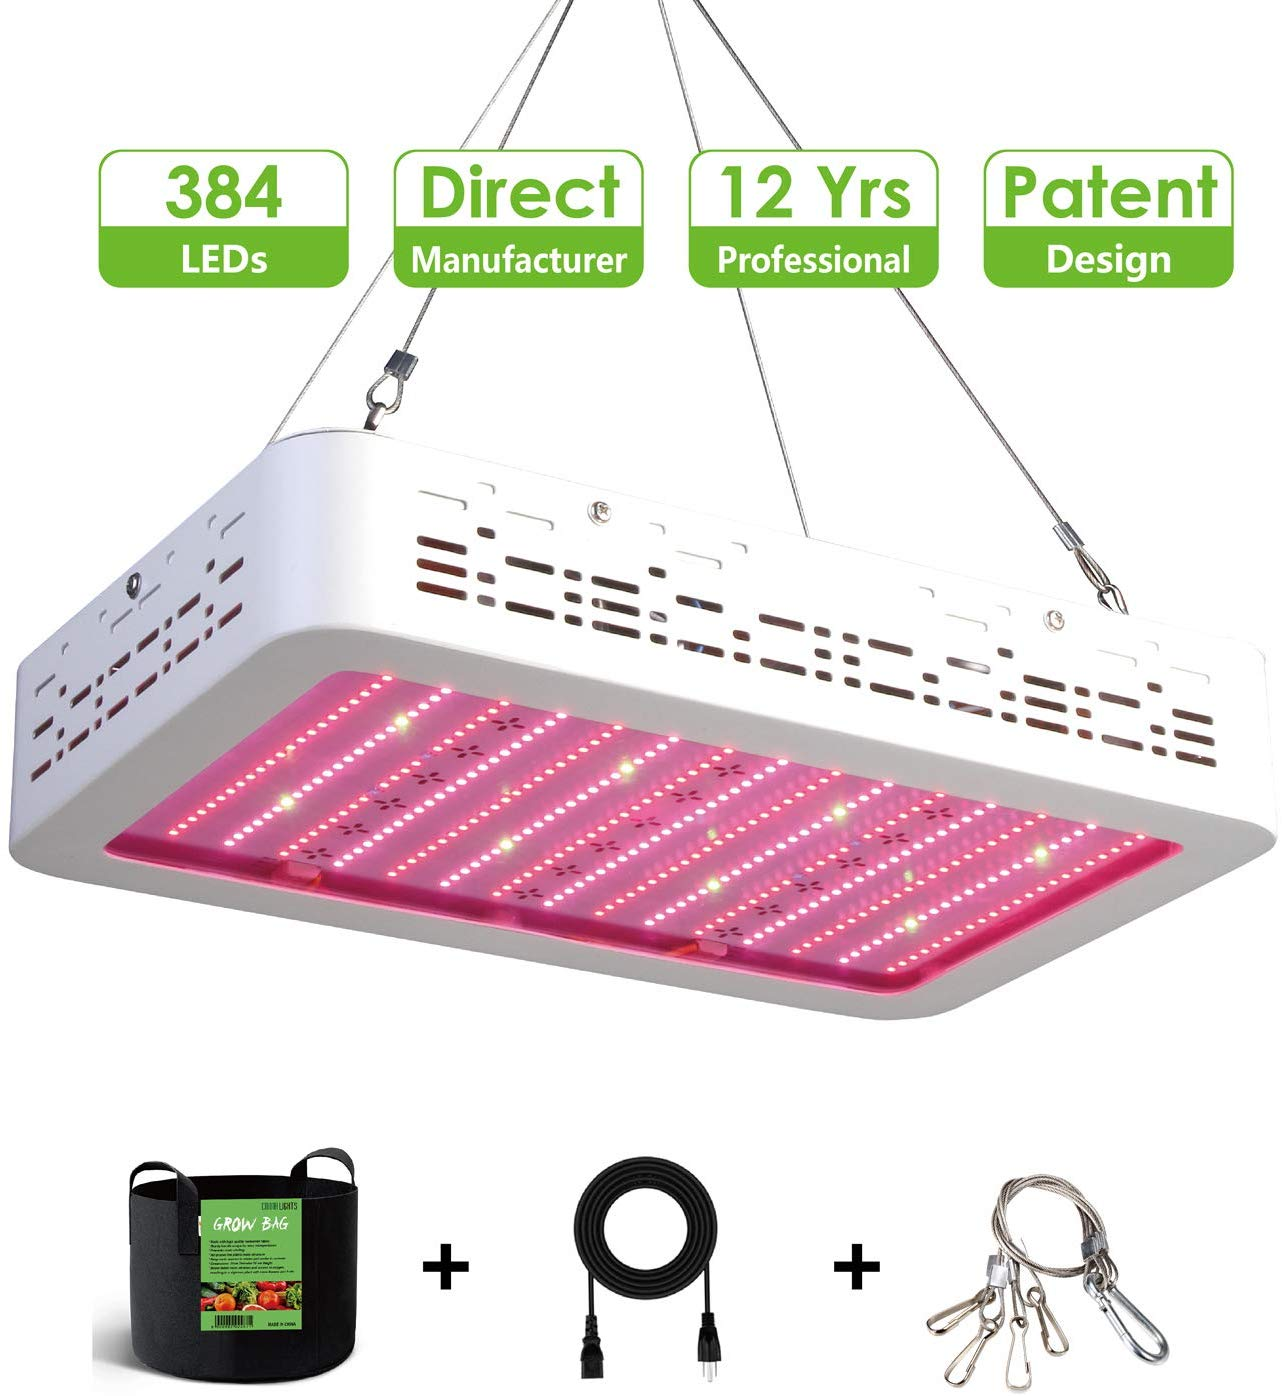 XECCON 2000W LED Grow Light